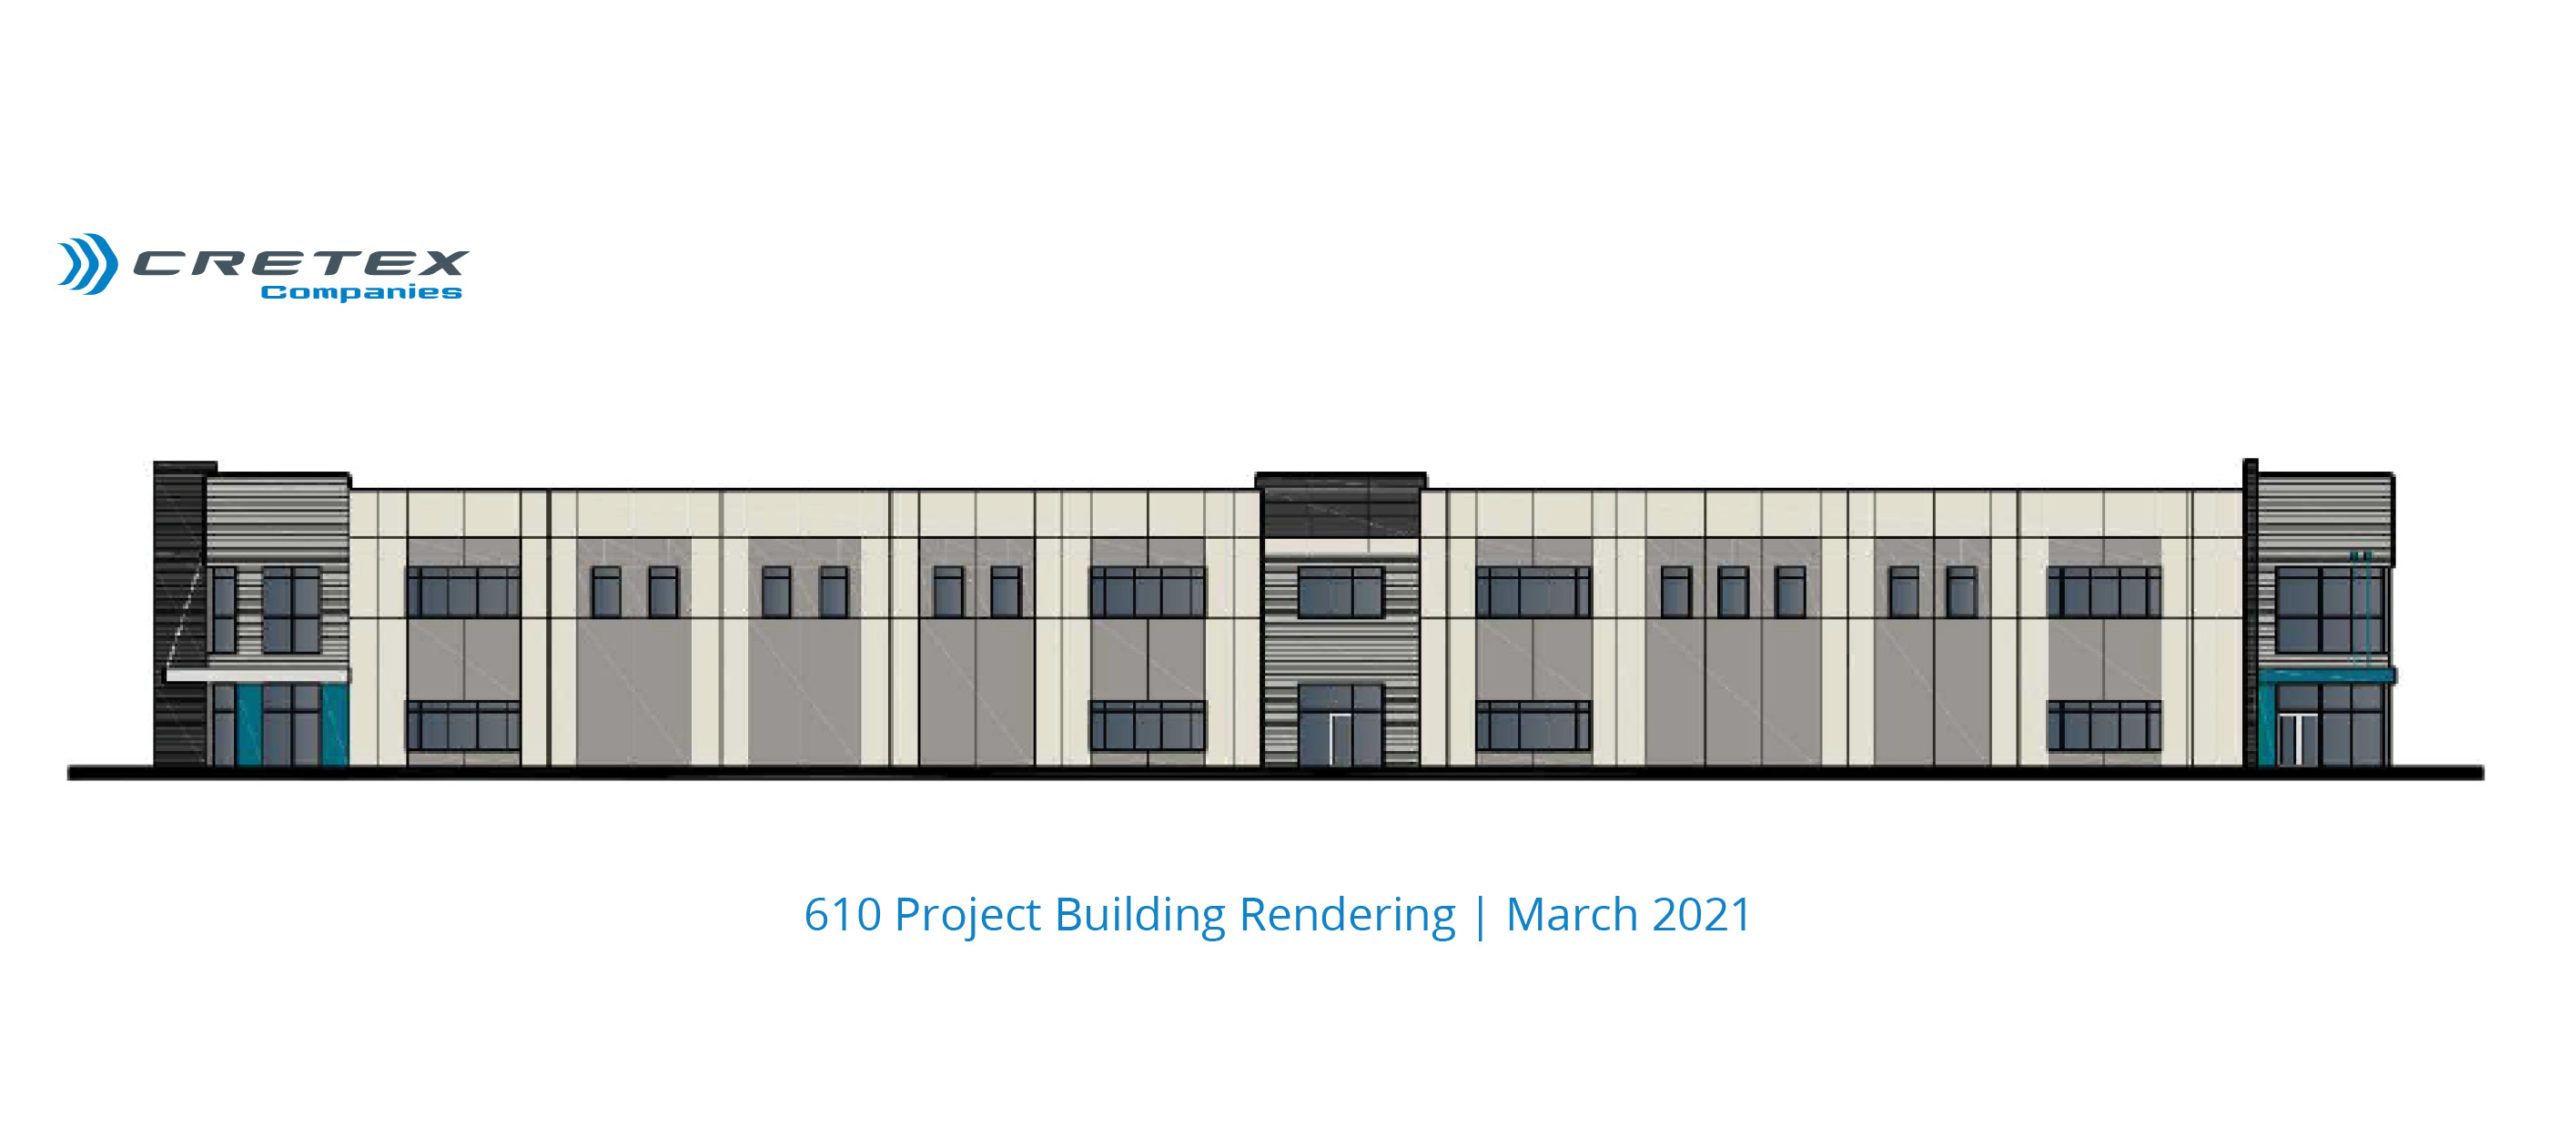 610 Project Building Rendering March 2021